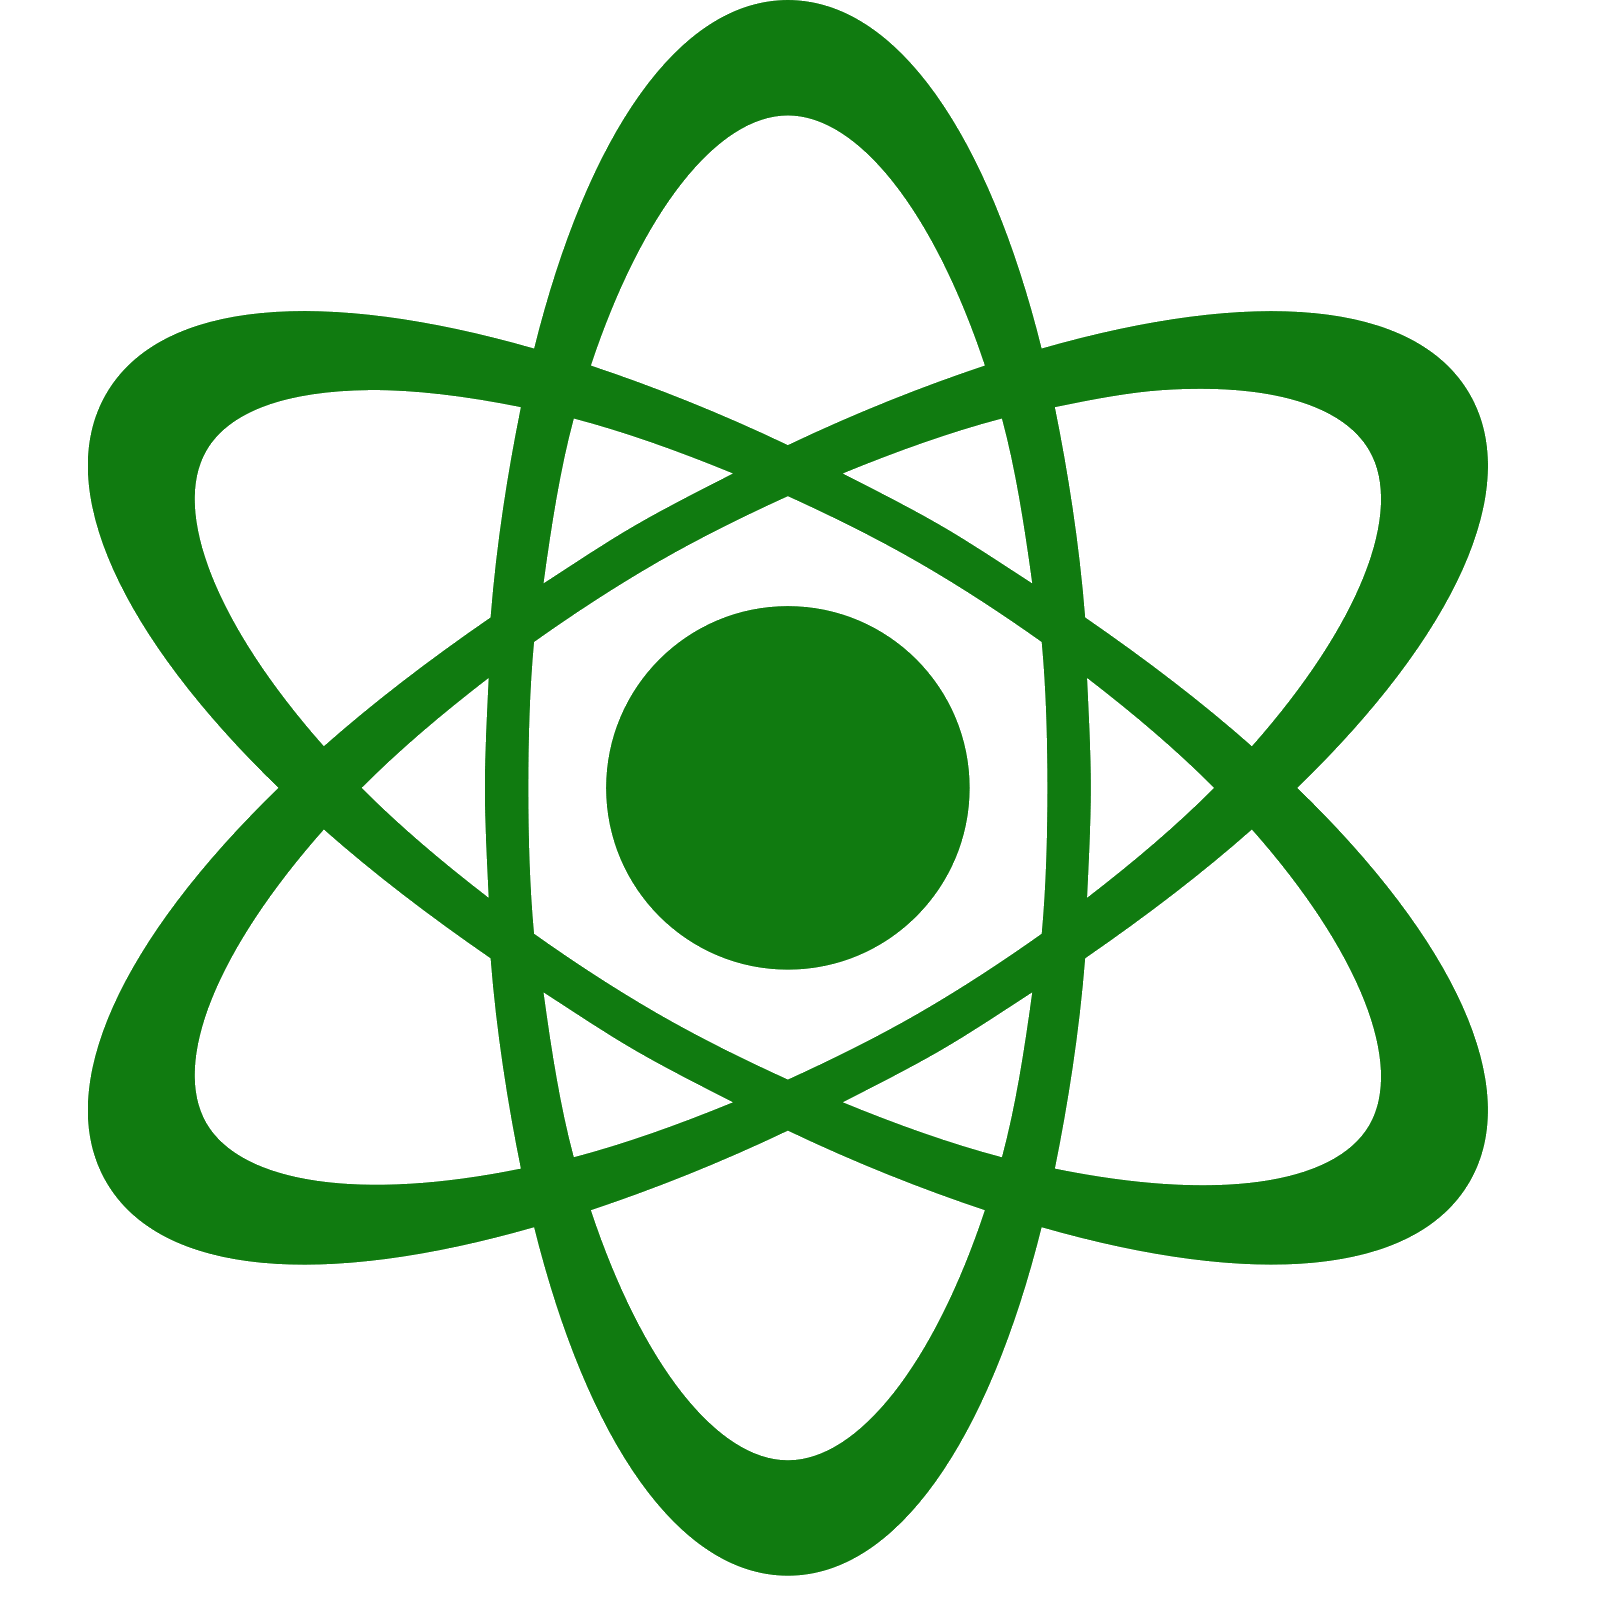 Transparent science symbol. Computer icons physics transprent